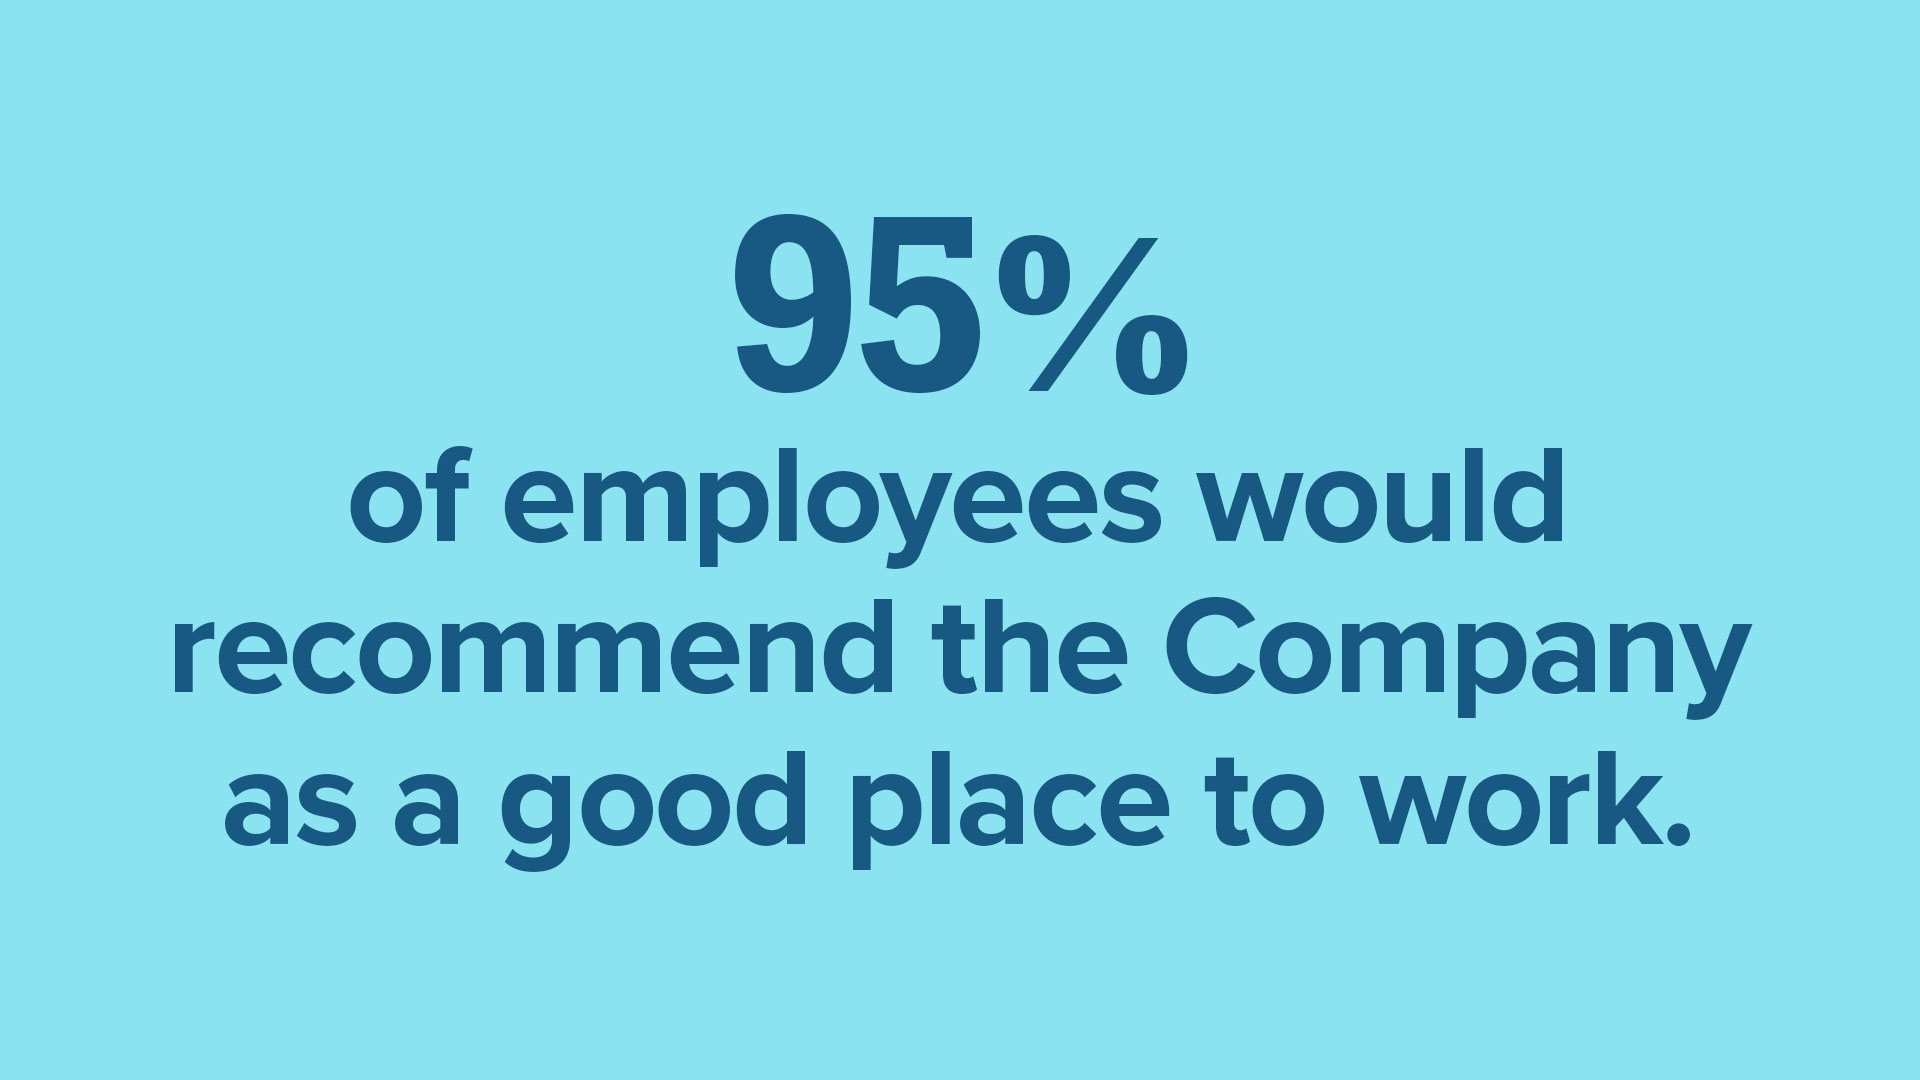 92% believe the organization operates in an ethical manner